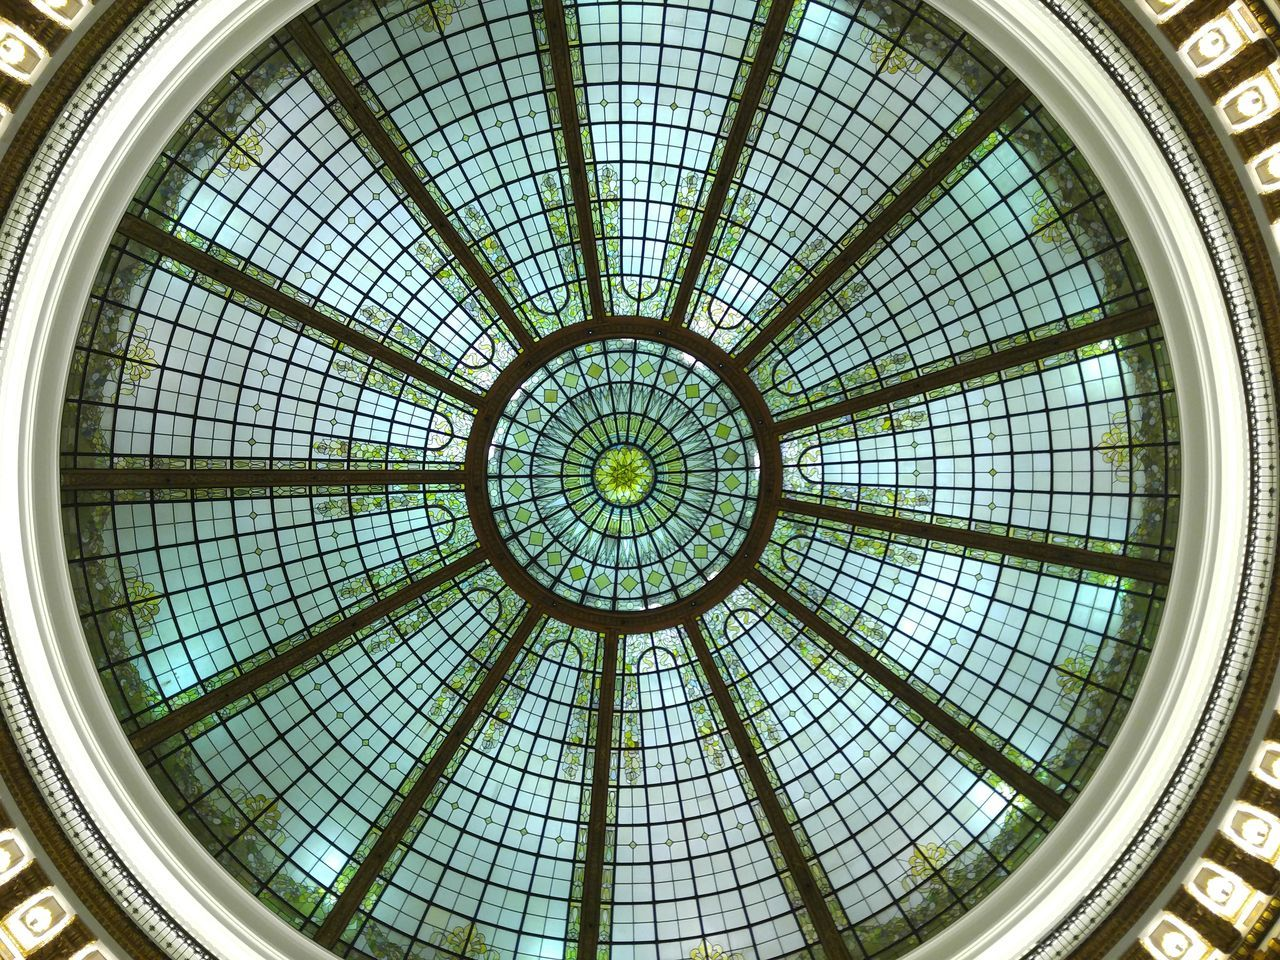 Directly Below Shot Of Dome Ceiling